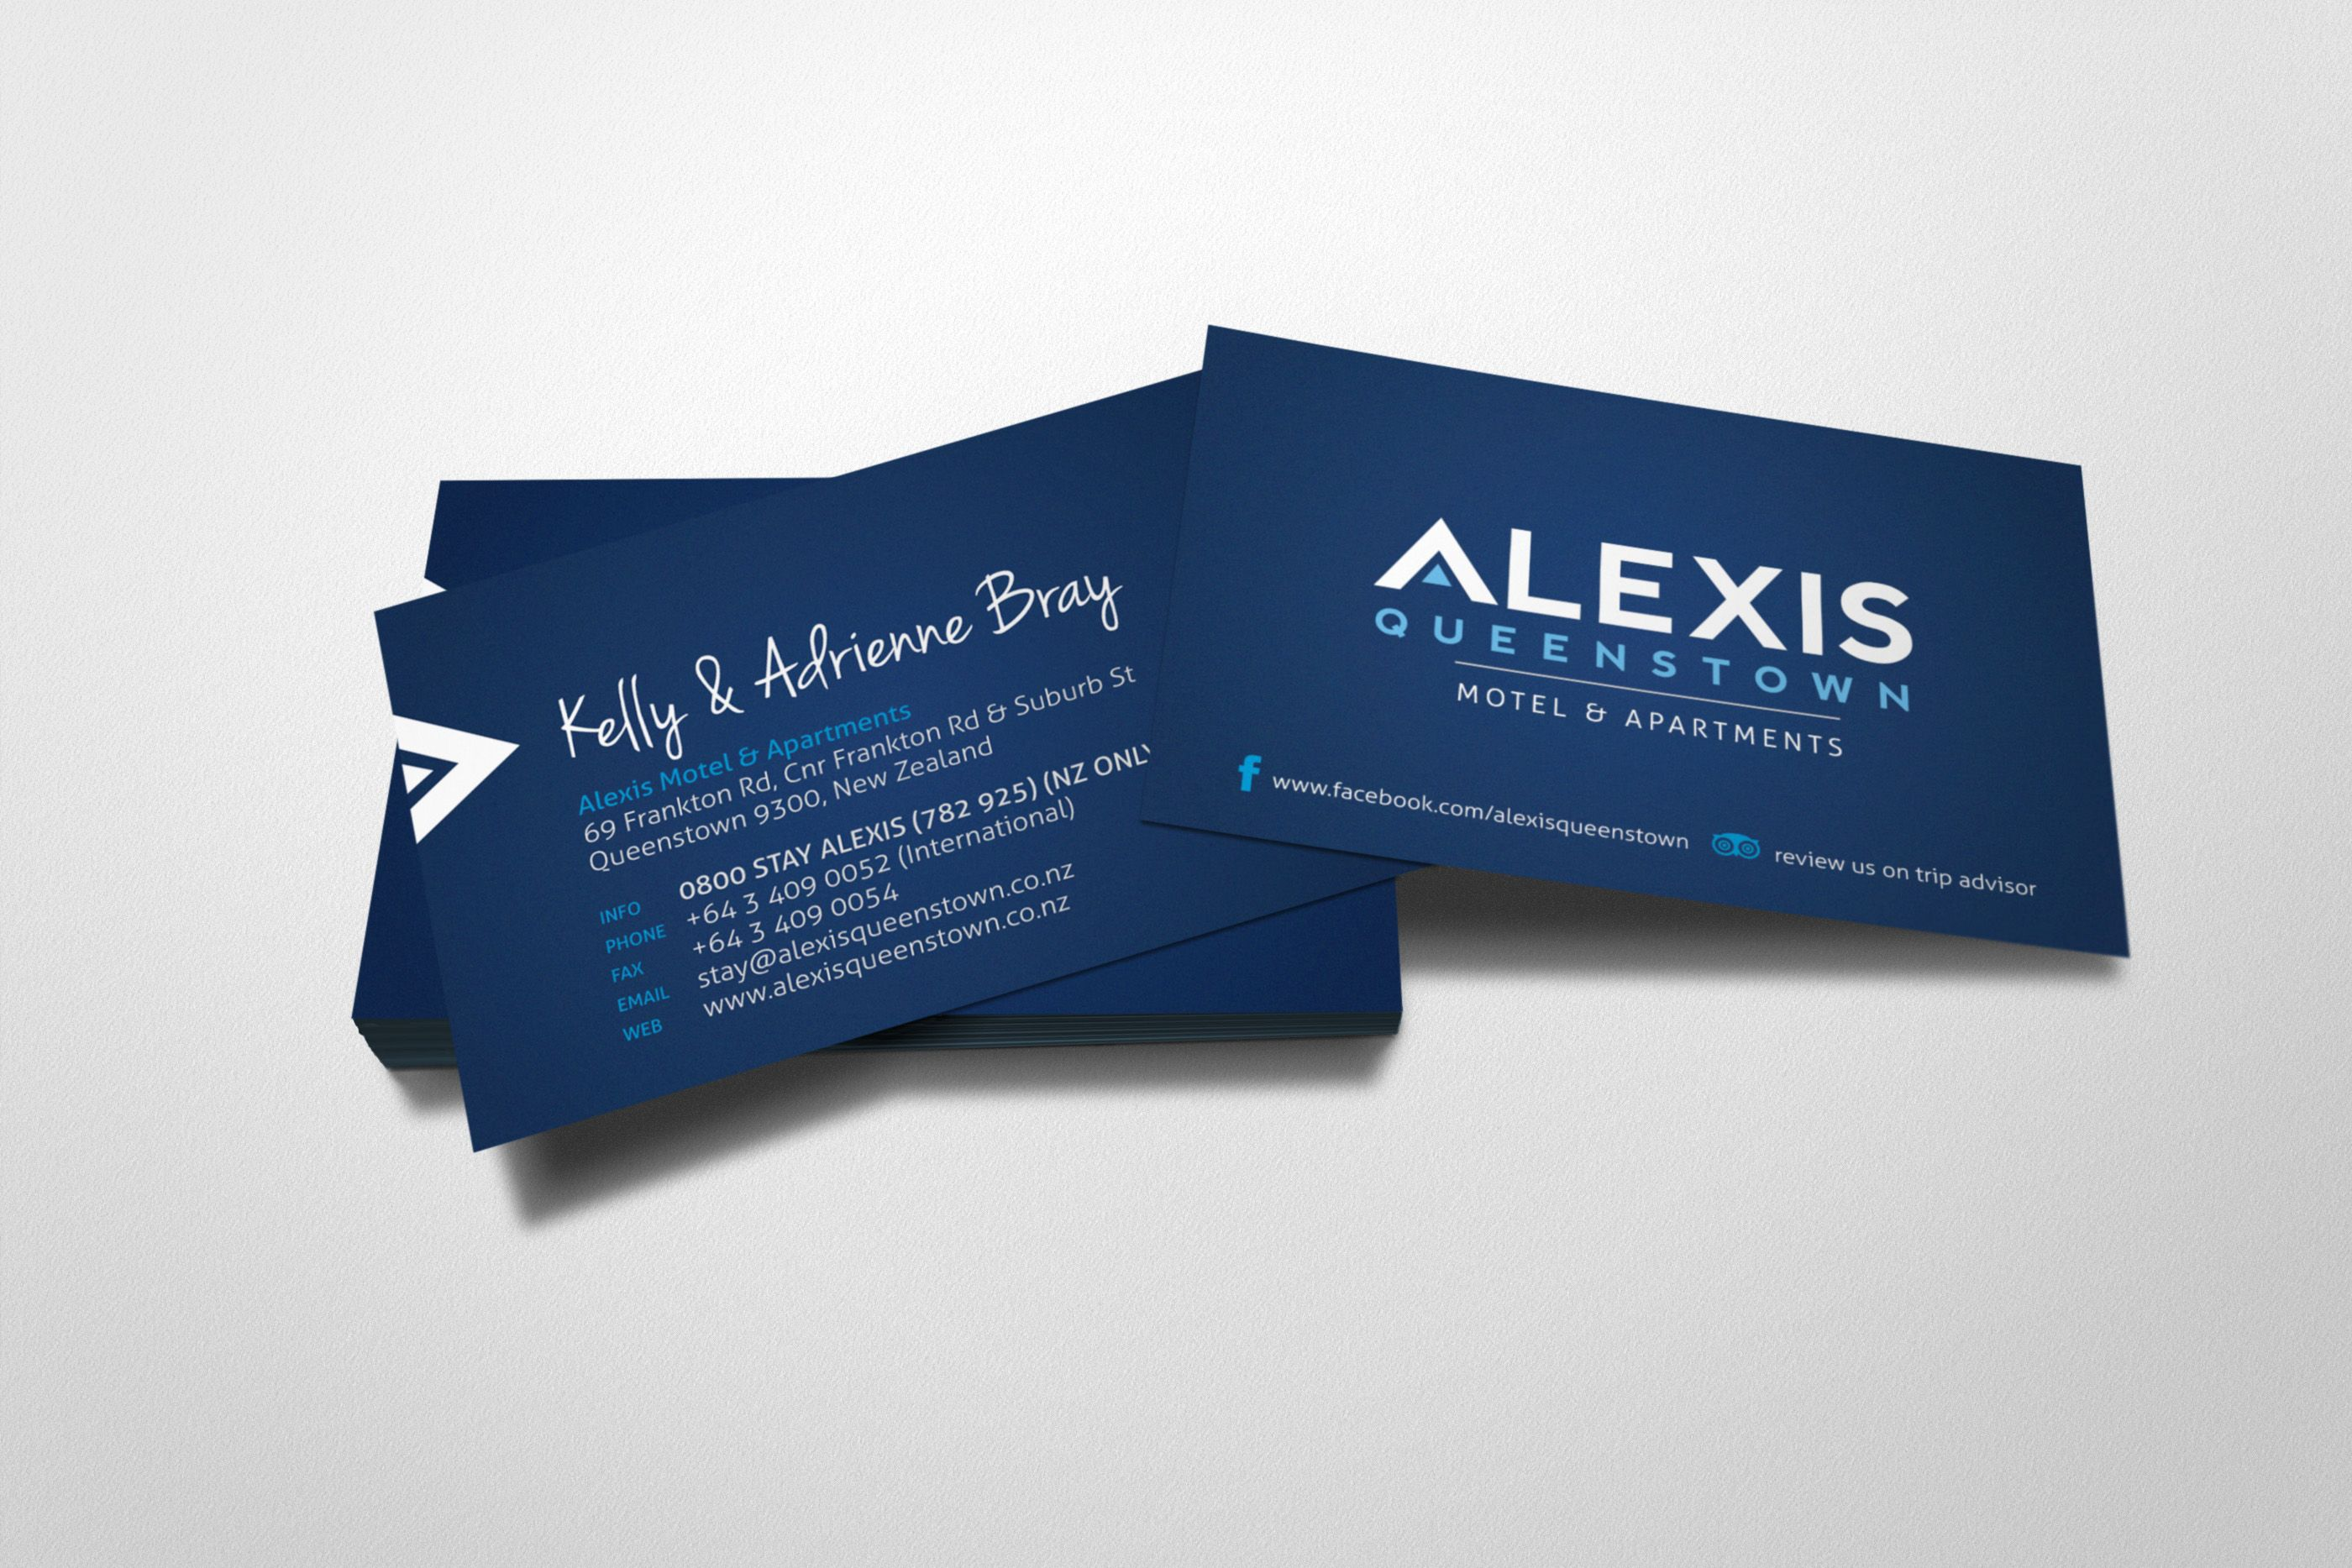 Alexis Queenstown Accommodation Business Card Design Print